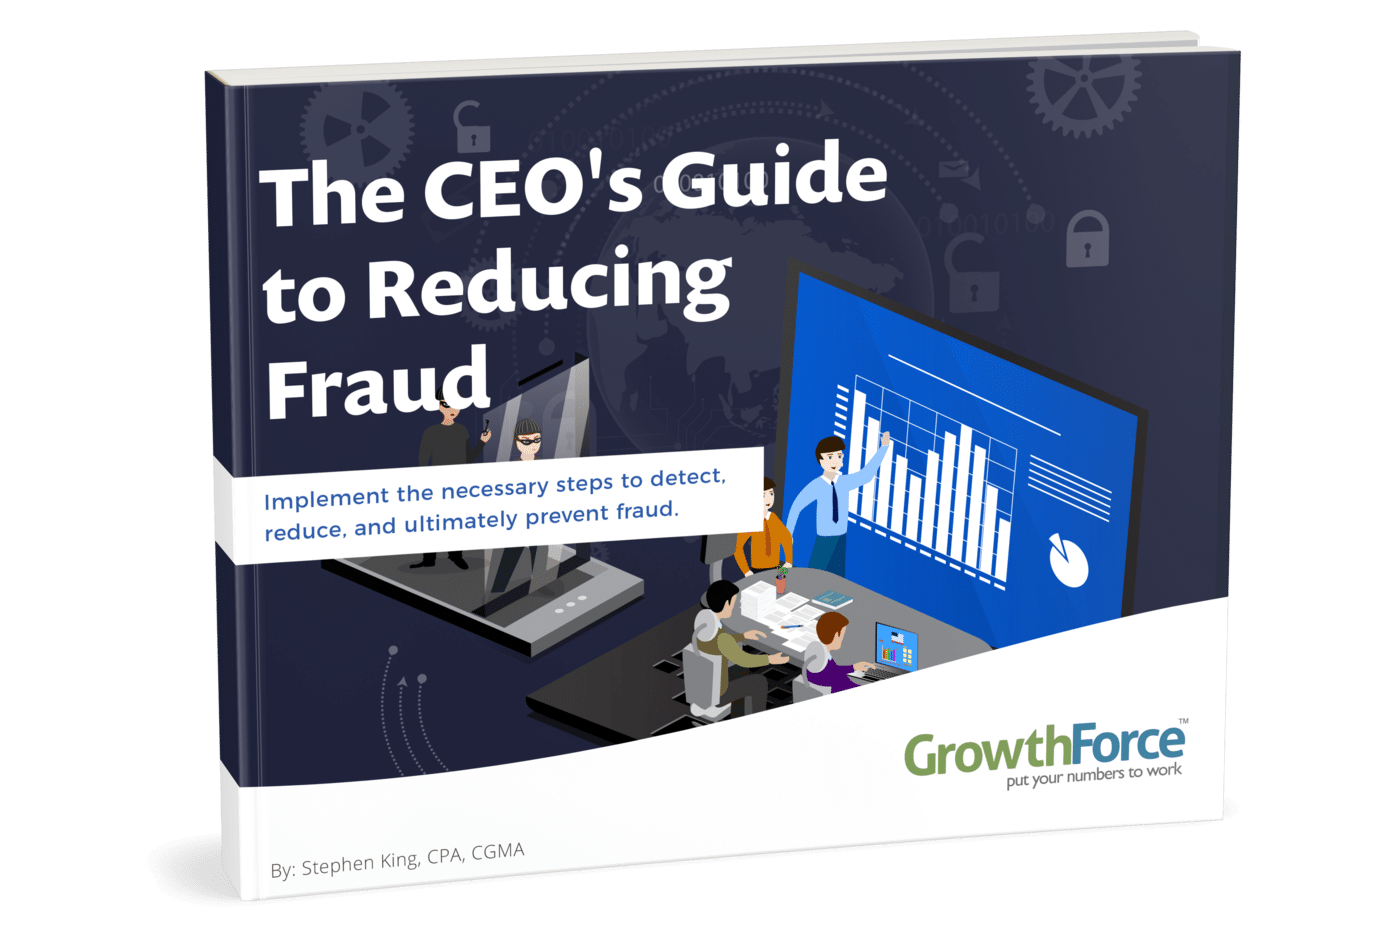 CEO's Guide to Reducing Fraud